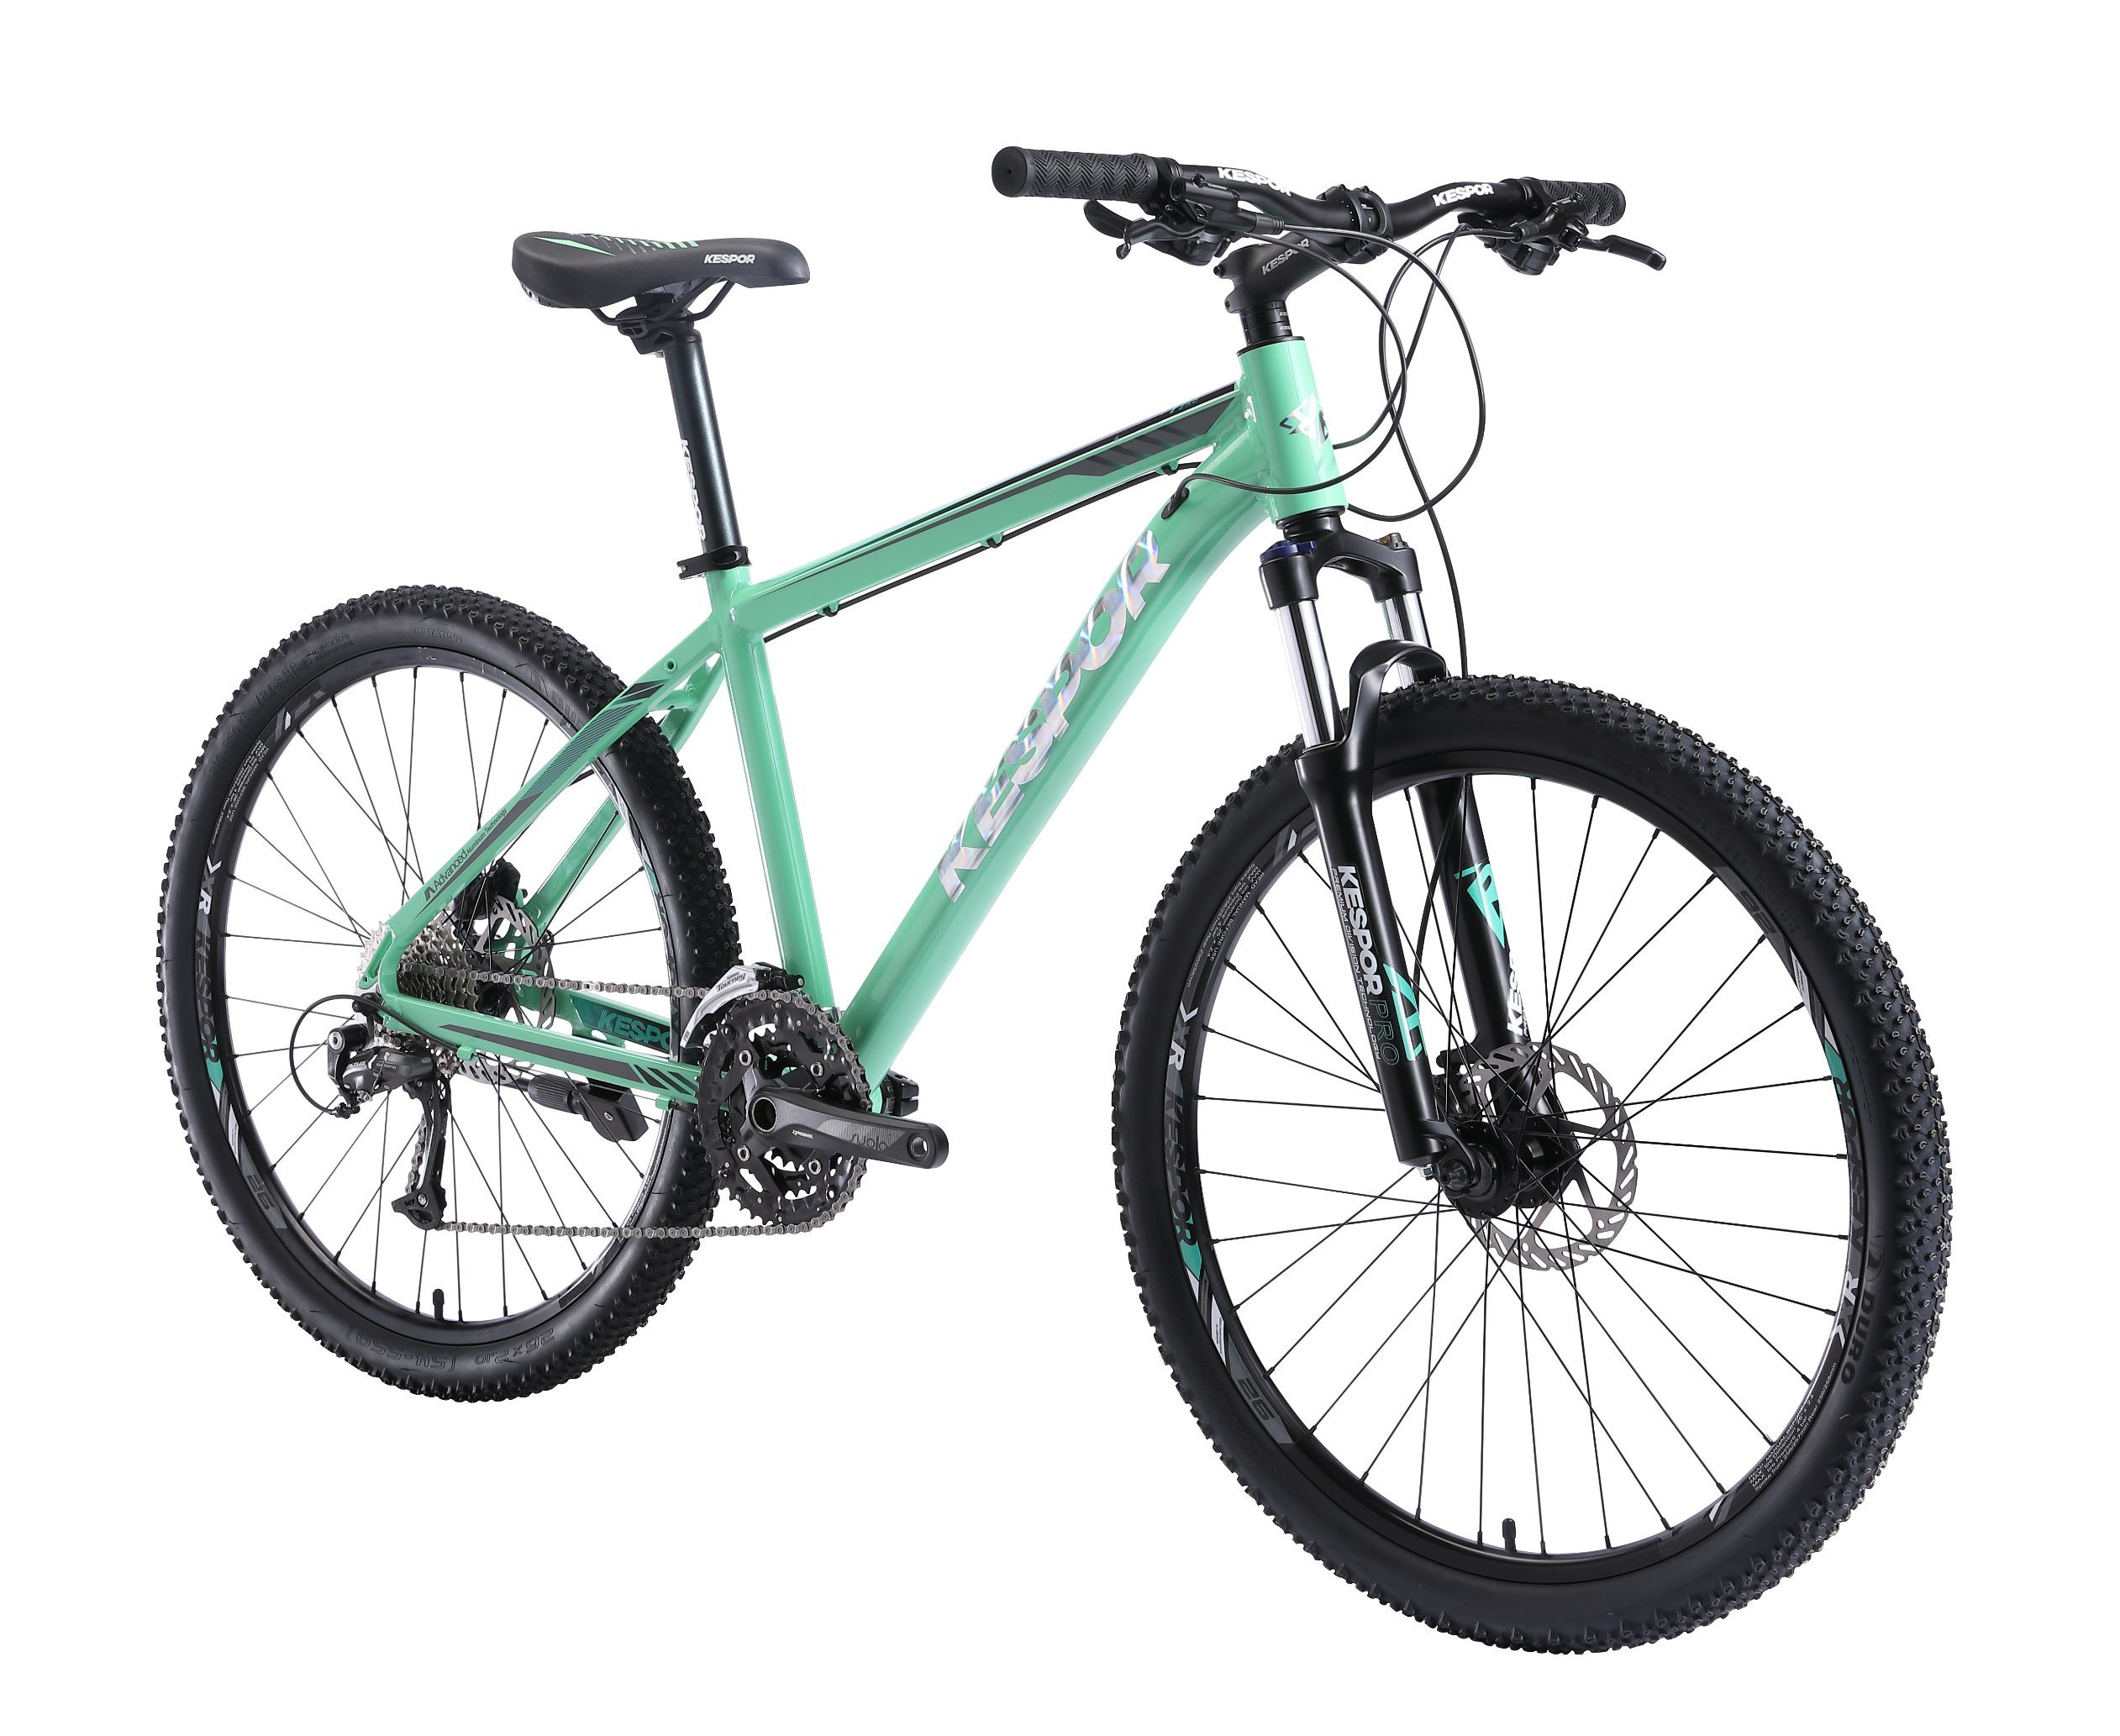 "Model Spark 26"" Alloy Mountain Bike pictures & photos"